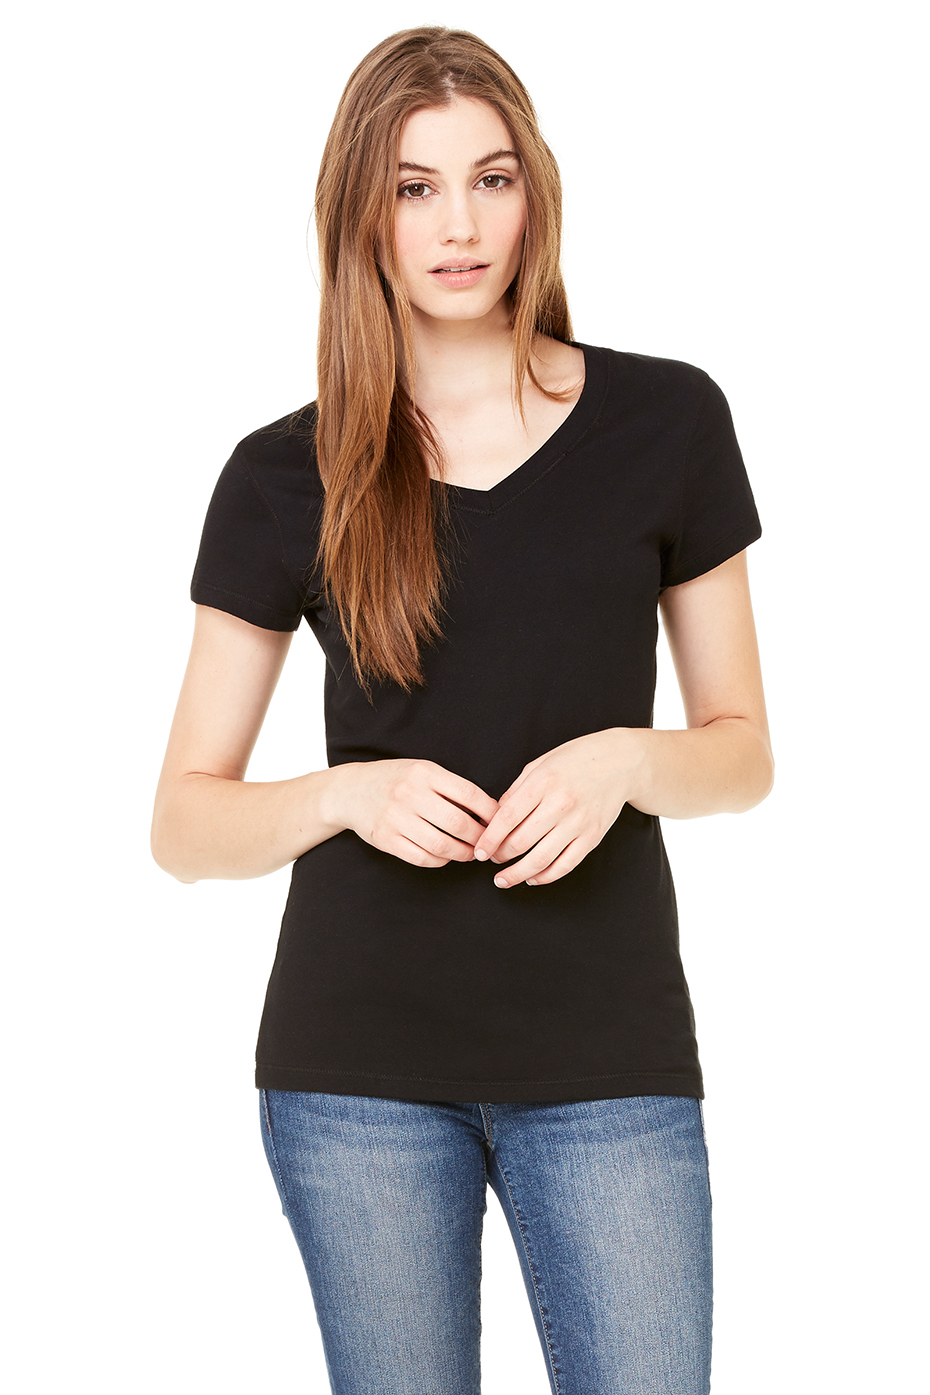 Browse mens adult tops at Augusta Sportswear. Shop our collection of wholesale sports tops for men! Get all the latest styles and brands online today!